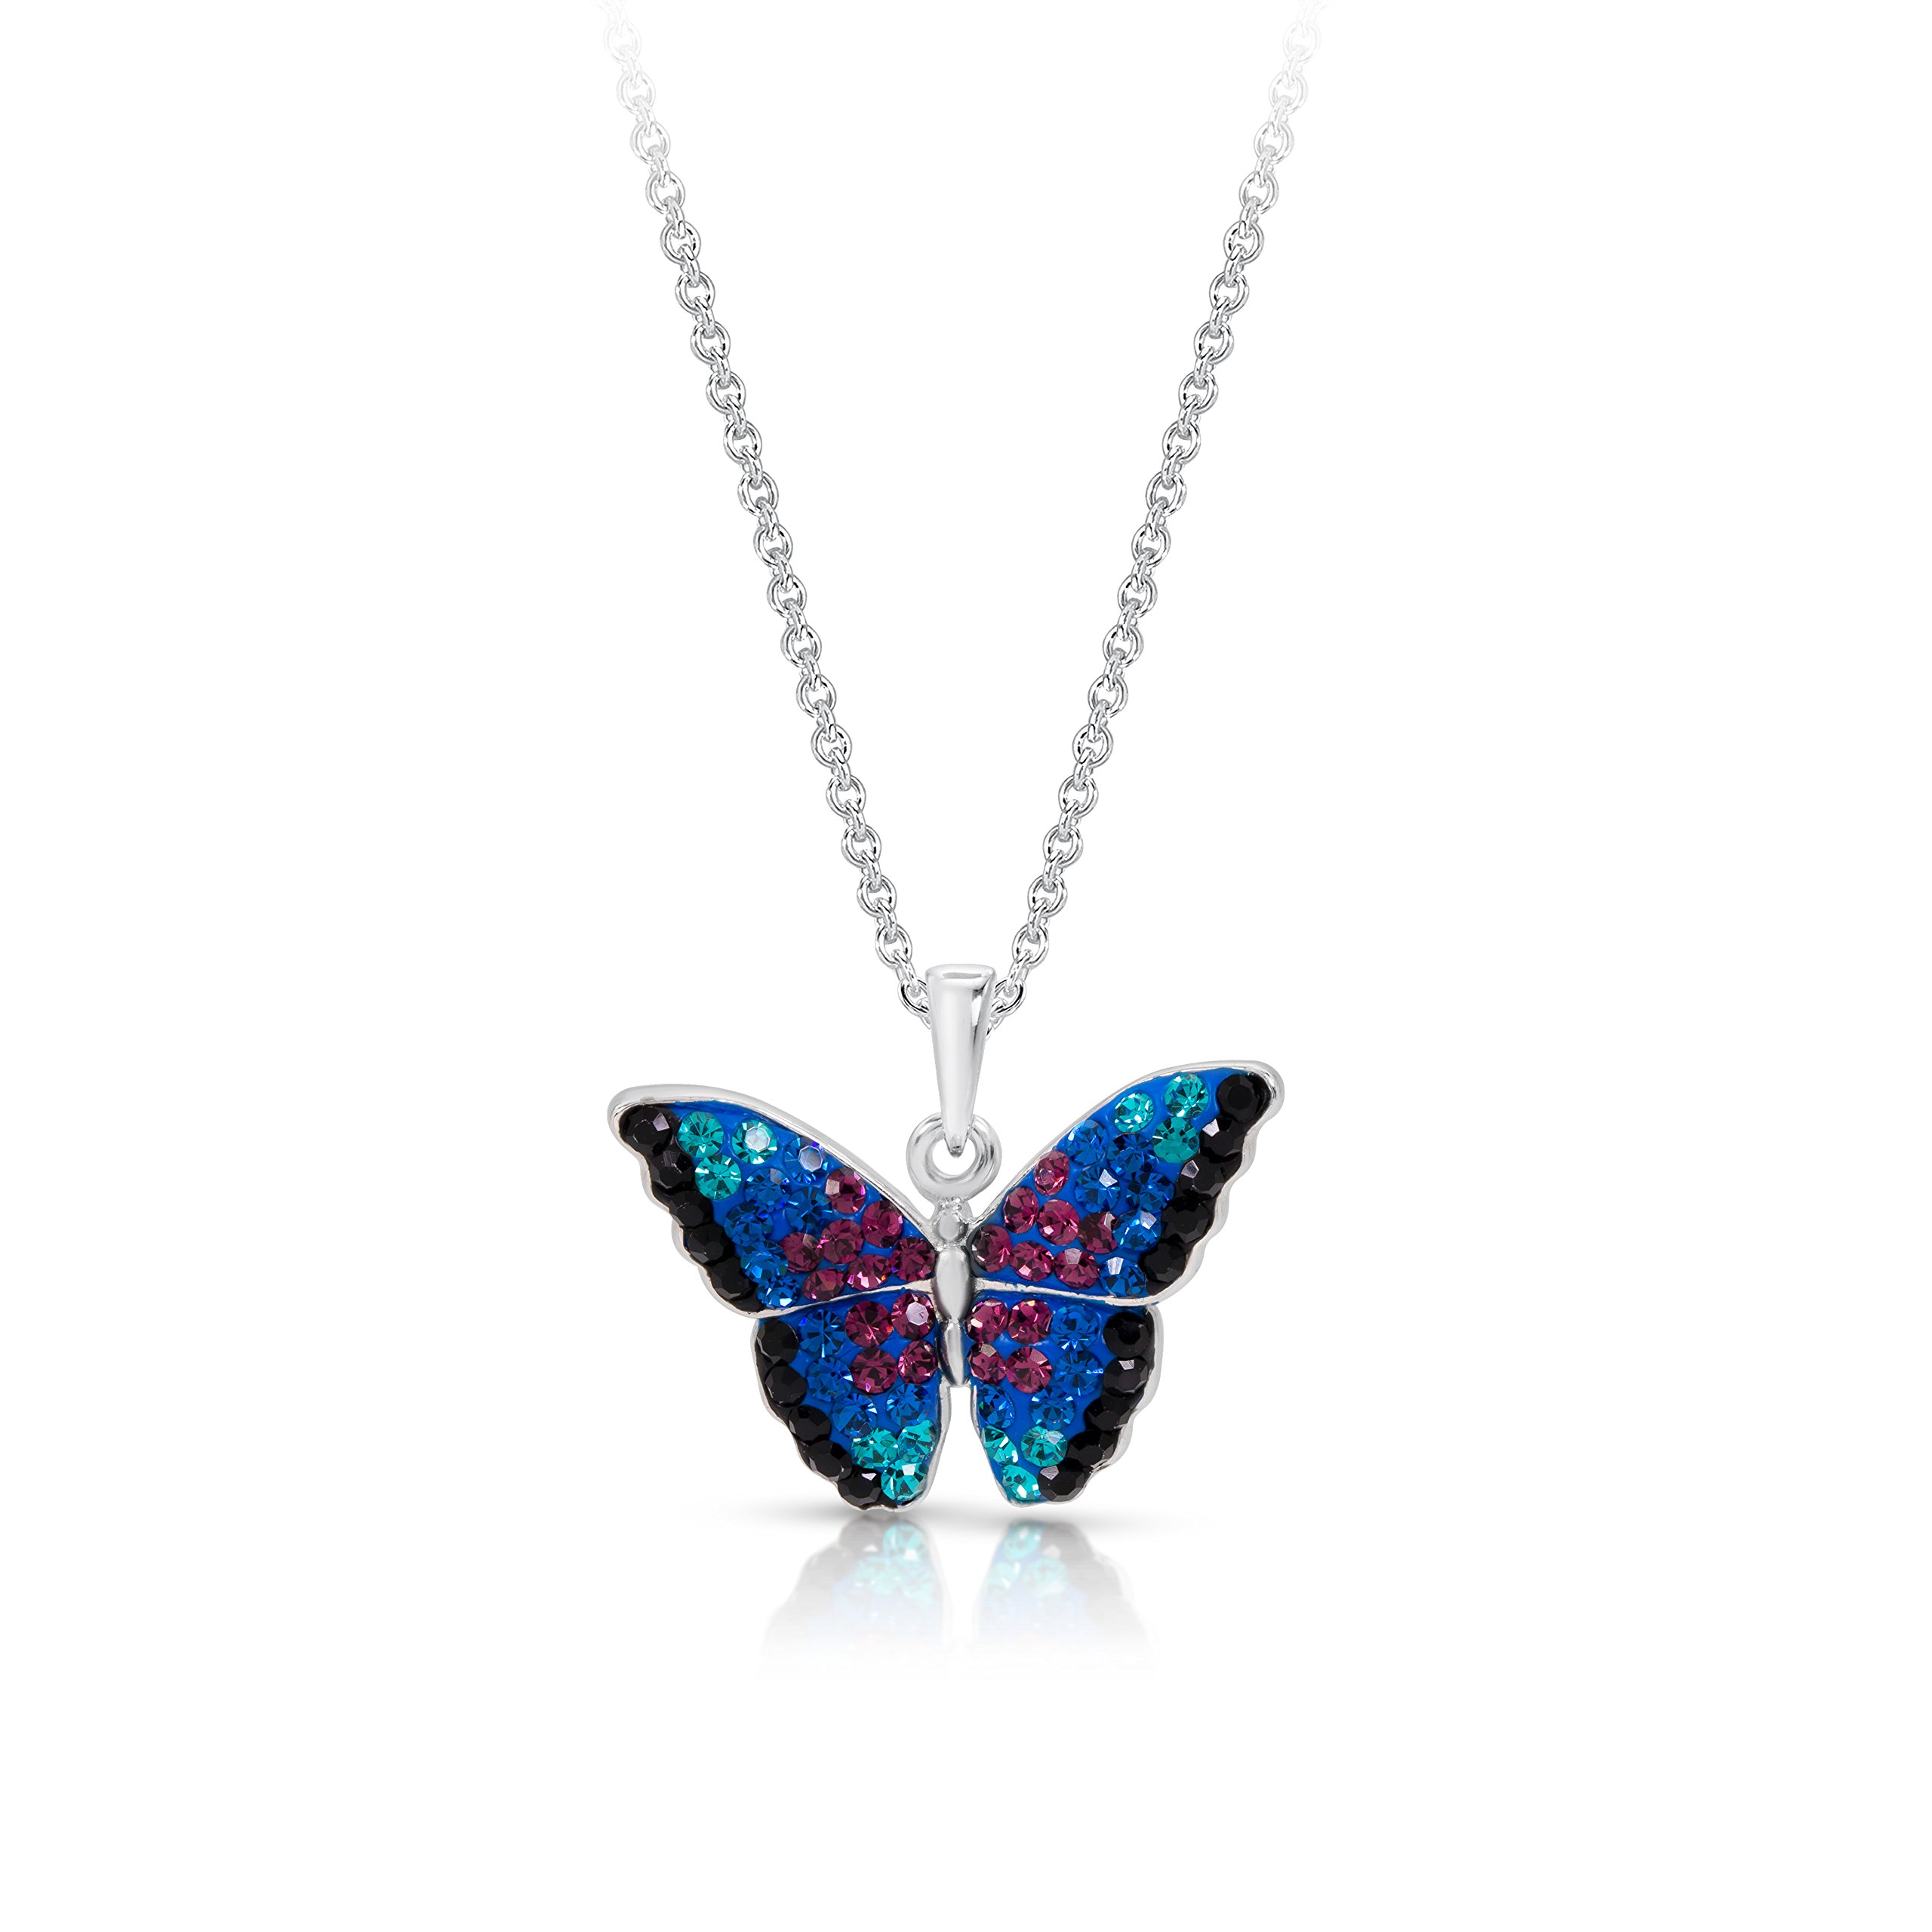 BLING BIJOUX Jewelry Blue Rainbow Crystal Monarch Butterfly Pendant Never Rust 925 Sterling Silver Natural and Hypoallergenic Chain with Free Breathtaking Gift Box for a Special Moment of Love